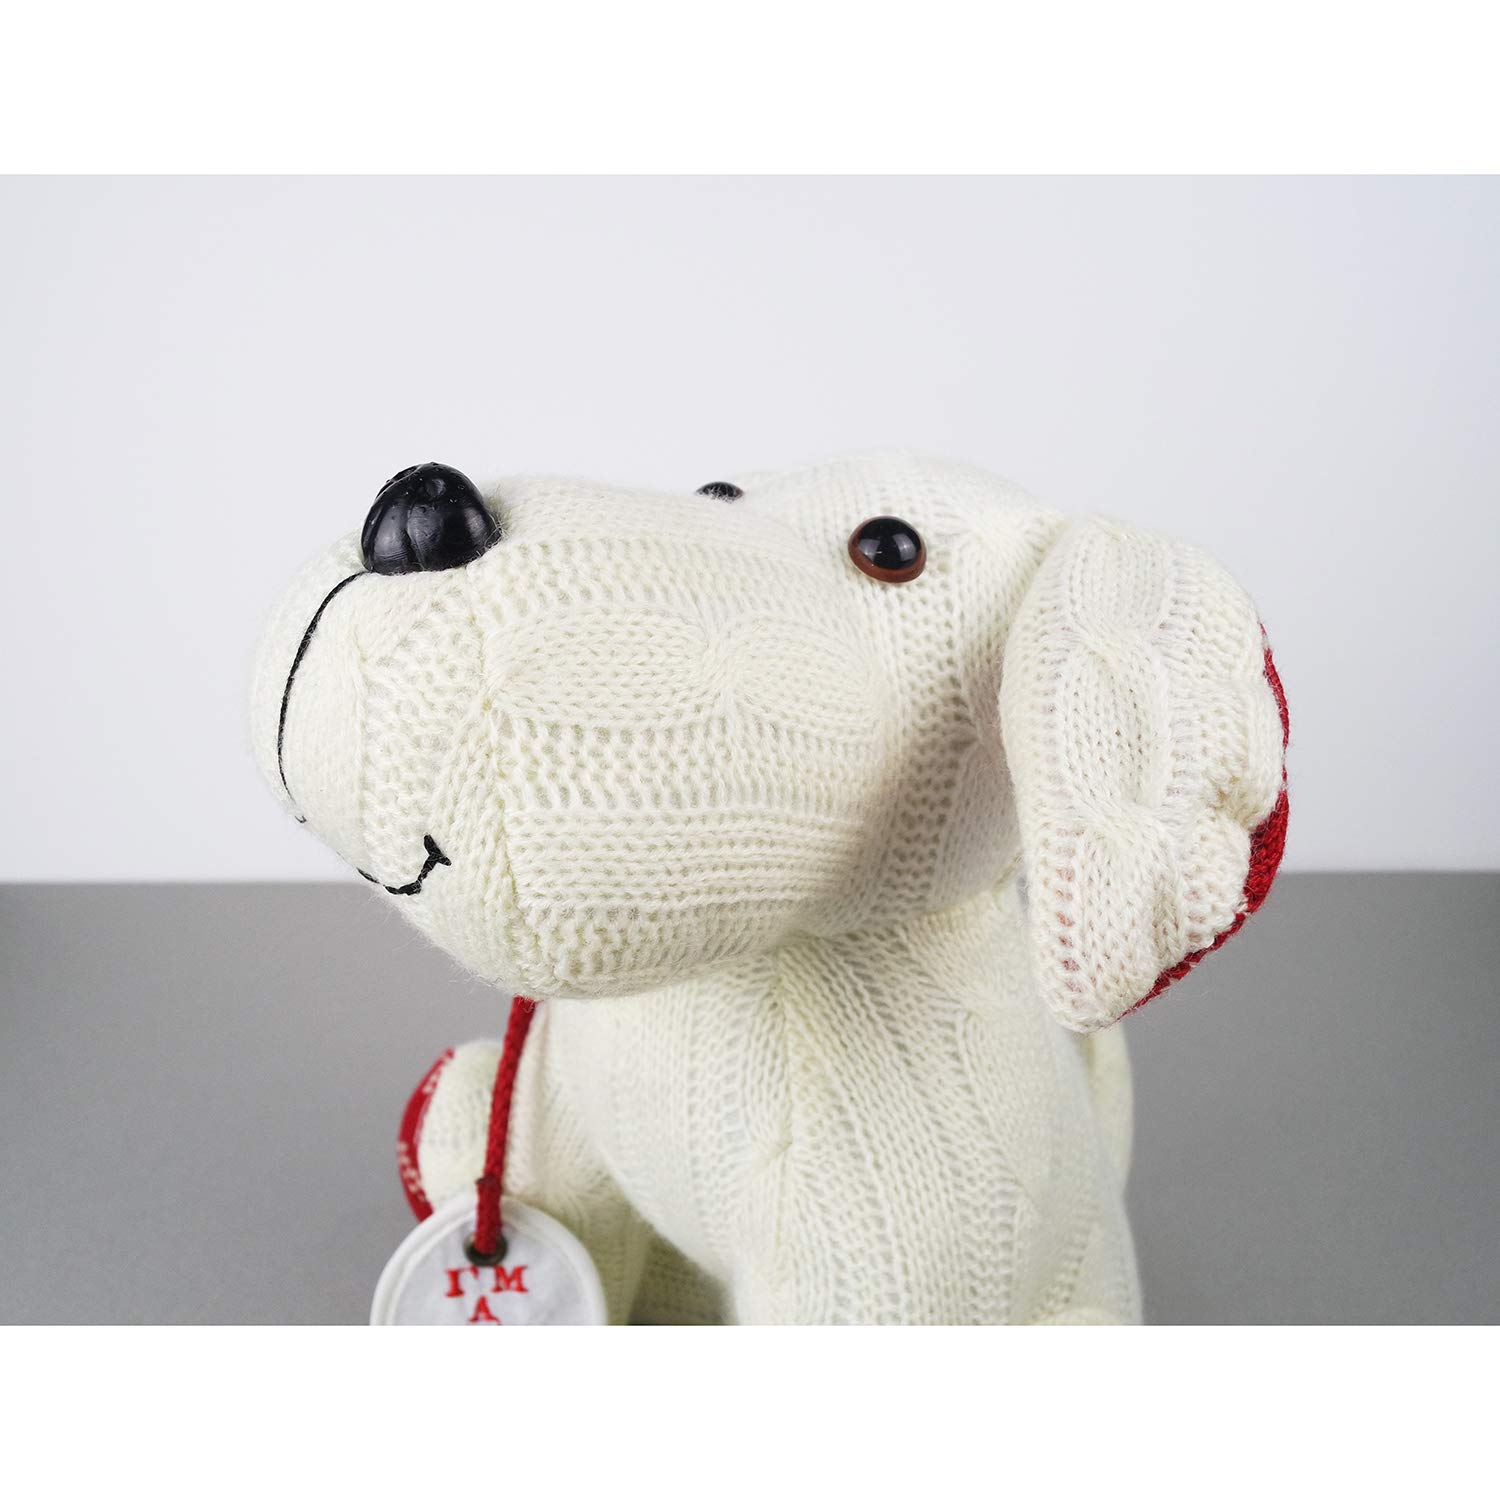 Stuffed Animal White Dog Door Stopper 1.73lb Home Decor Cable Knit Pattern by dwelling (Image #3)